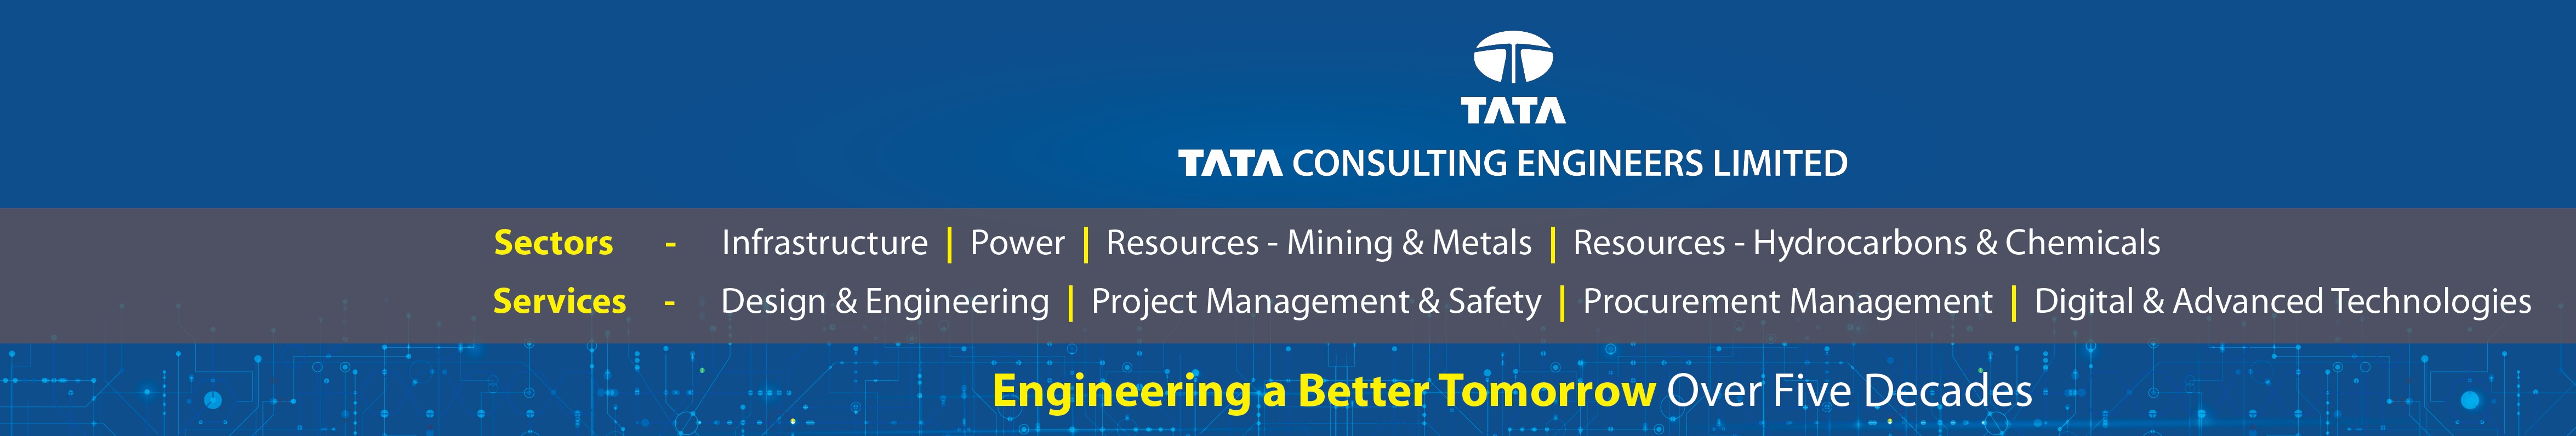 Tata Consulting Engineers Limited Linkedin